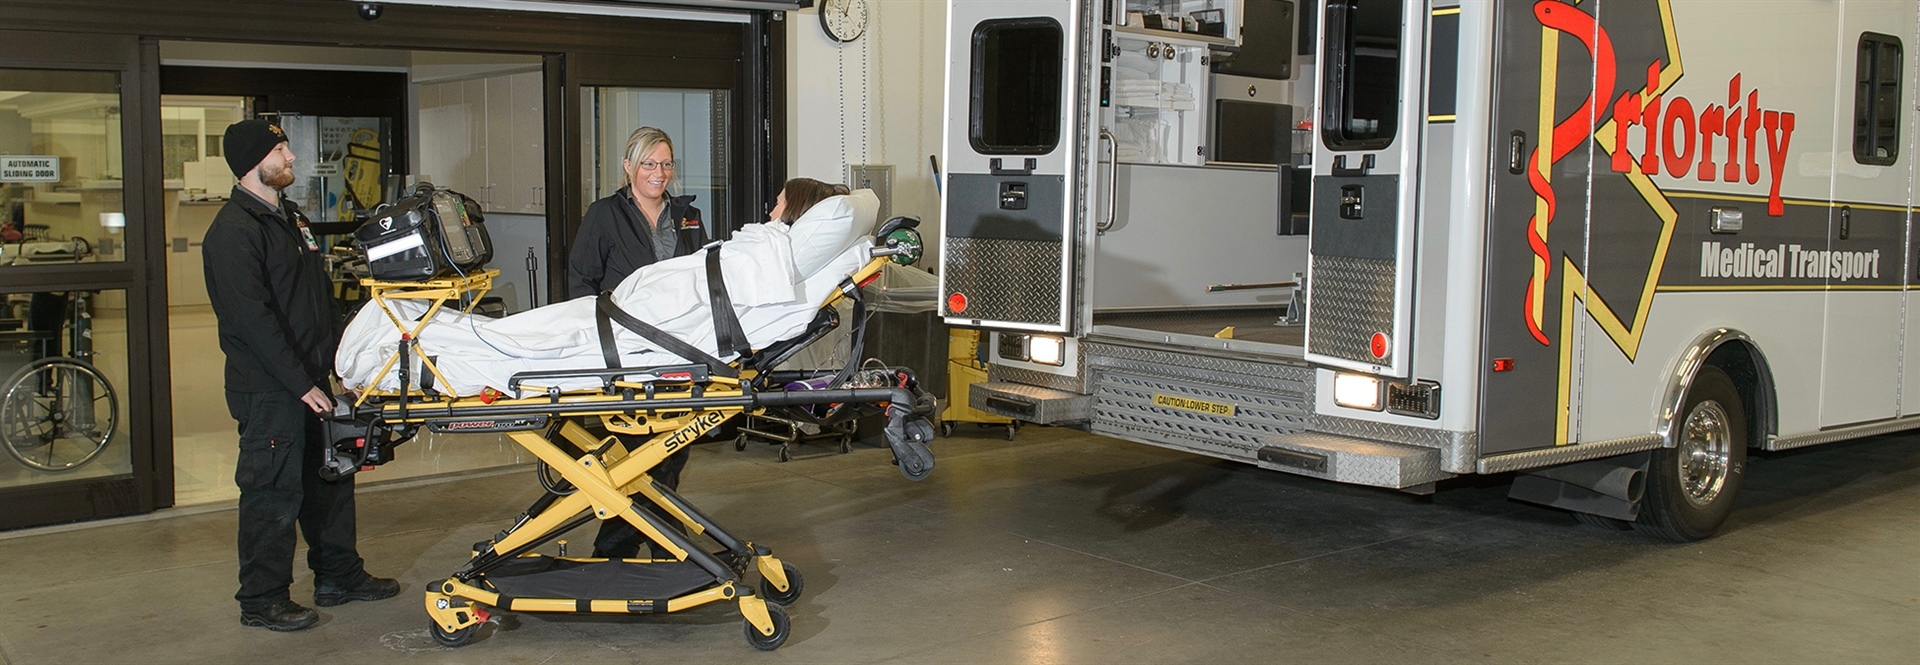 PMT Ambulance Patient Transport